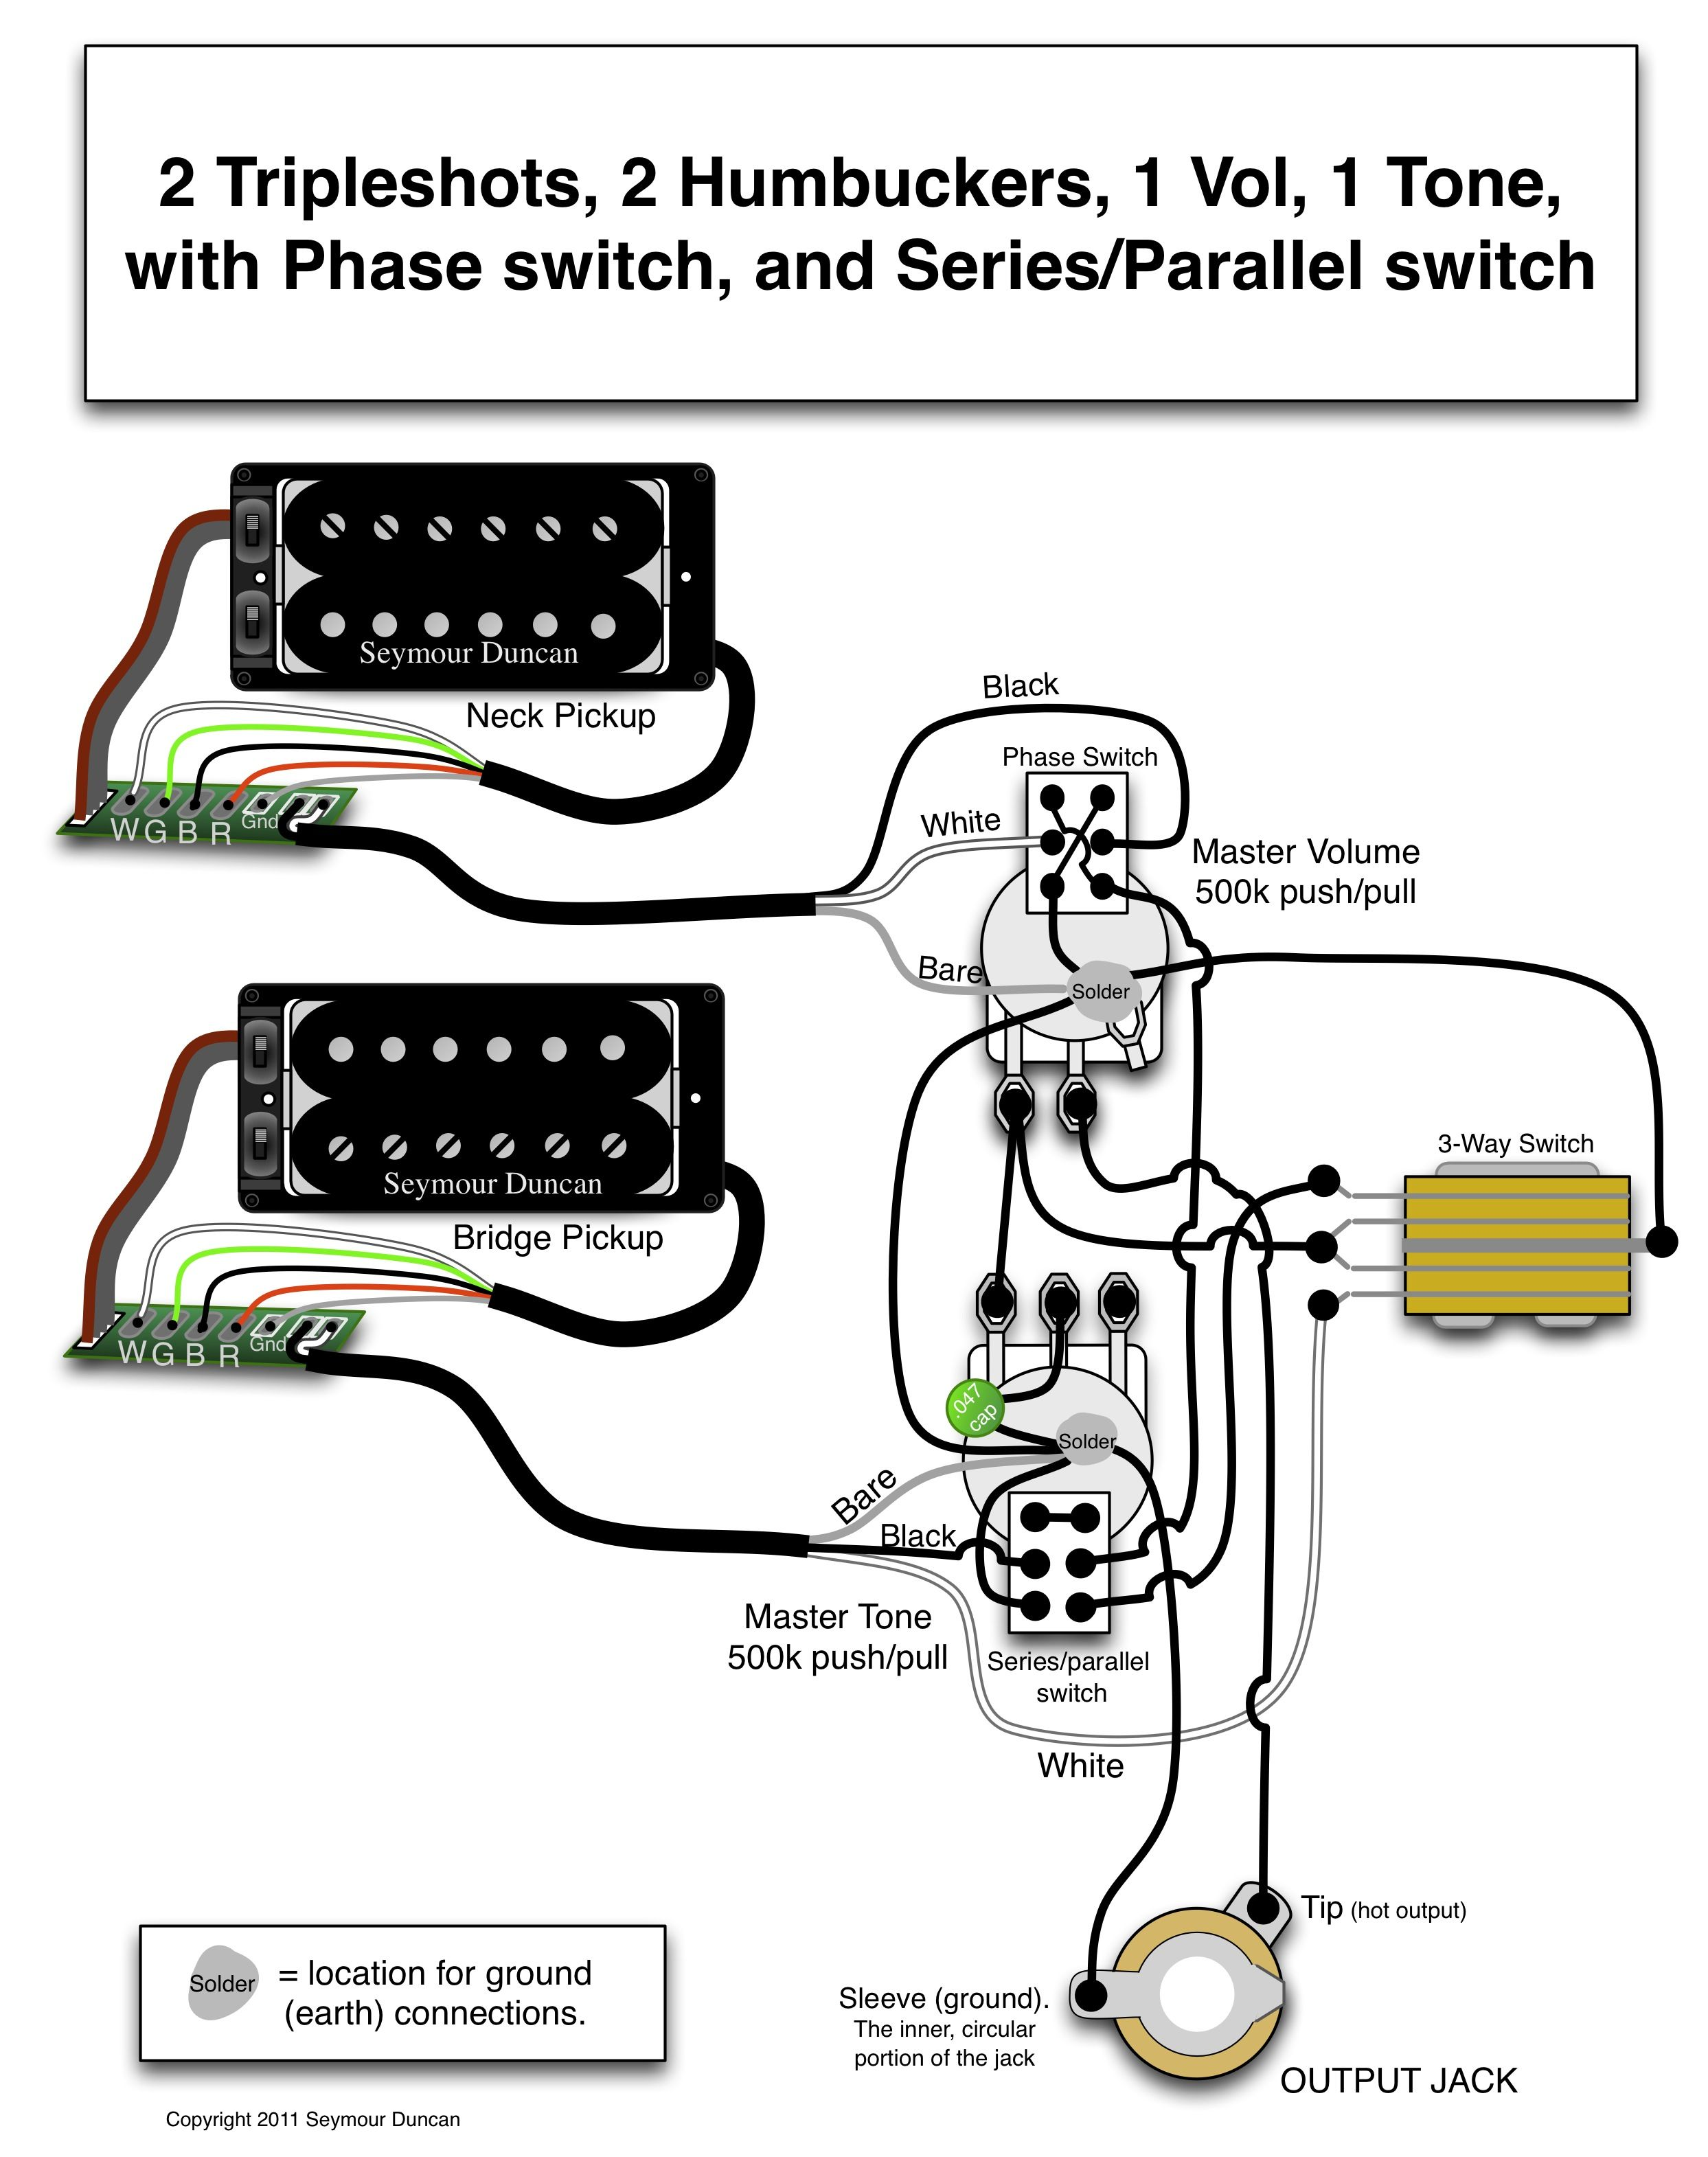 guitar wiring diagram 2 pickup 1 volume tone 2008 honda civic audio seymour duncan triple shots